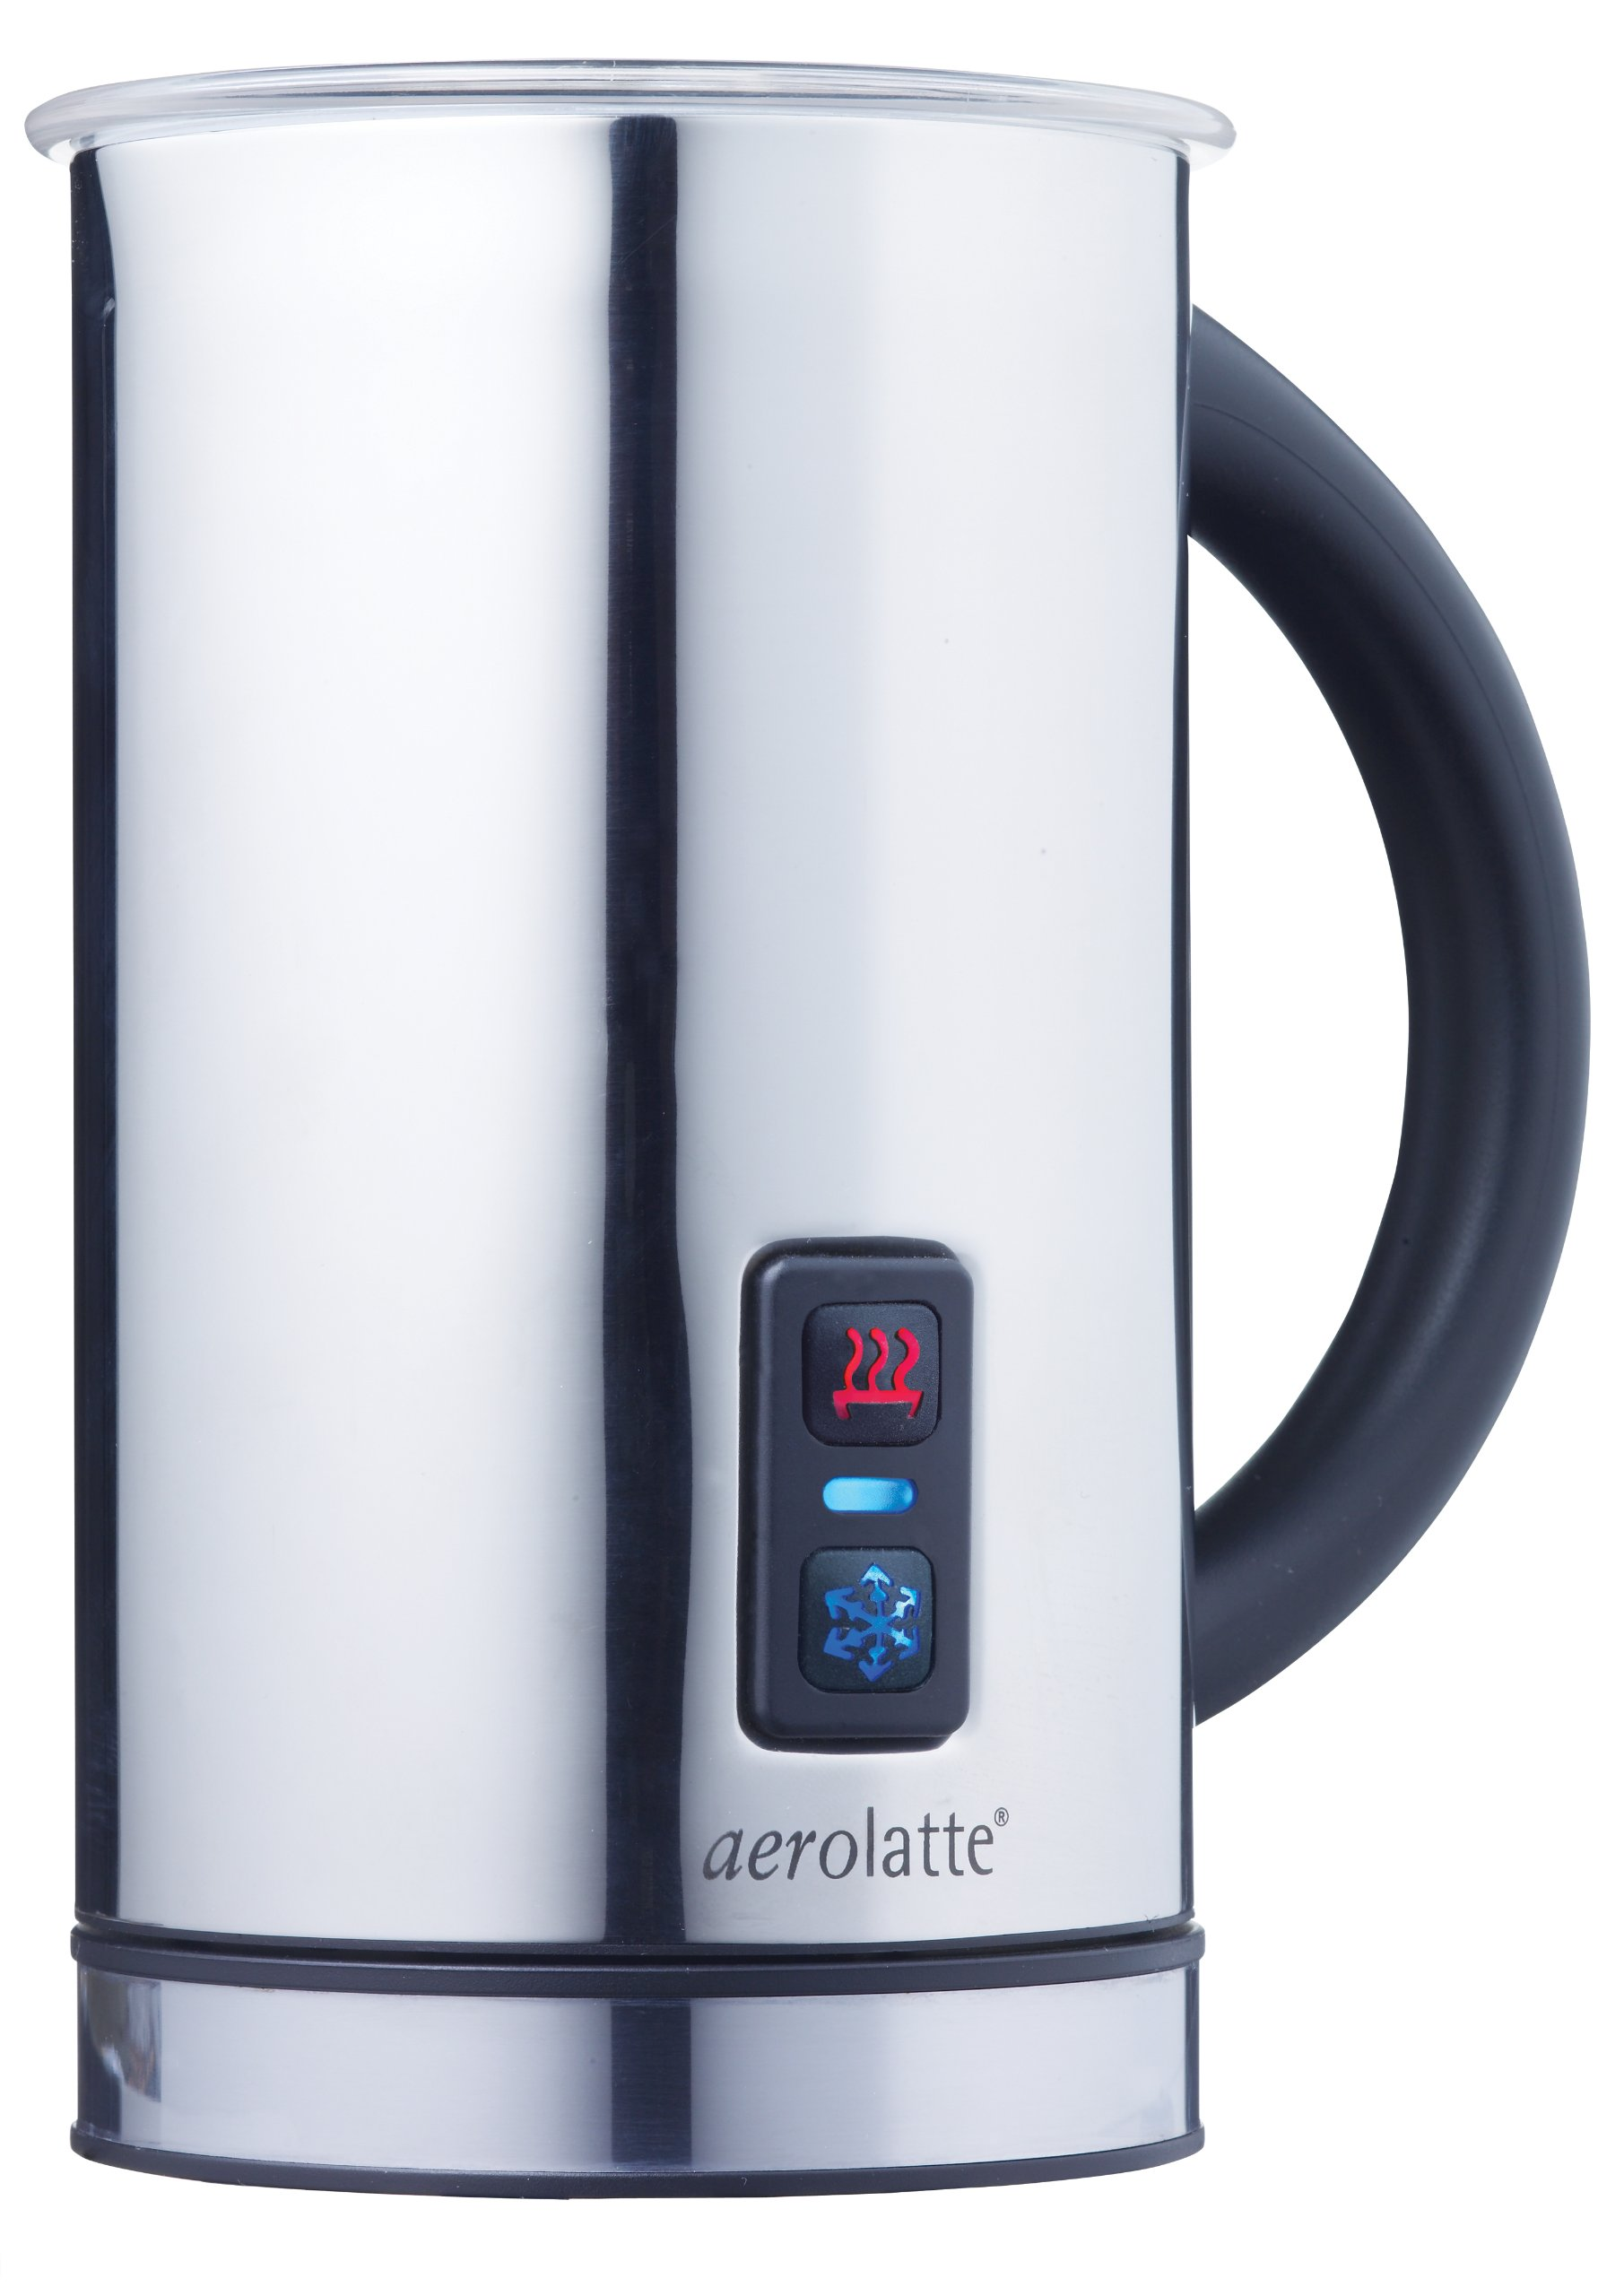 aerolatte Grande Automatic Hot or Cold Milk Frother and Cappuccino Foam Maker, Stainless Steel, 16-Ounce